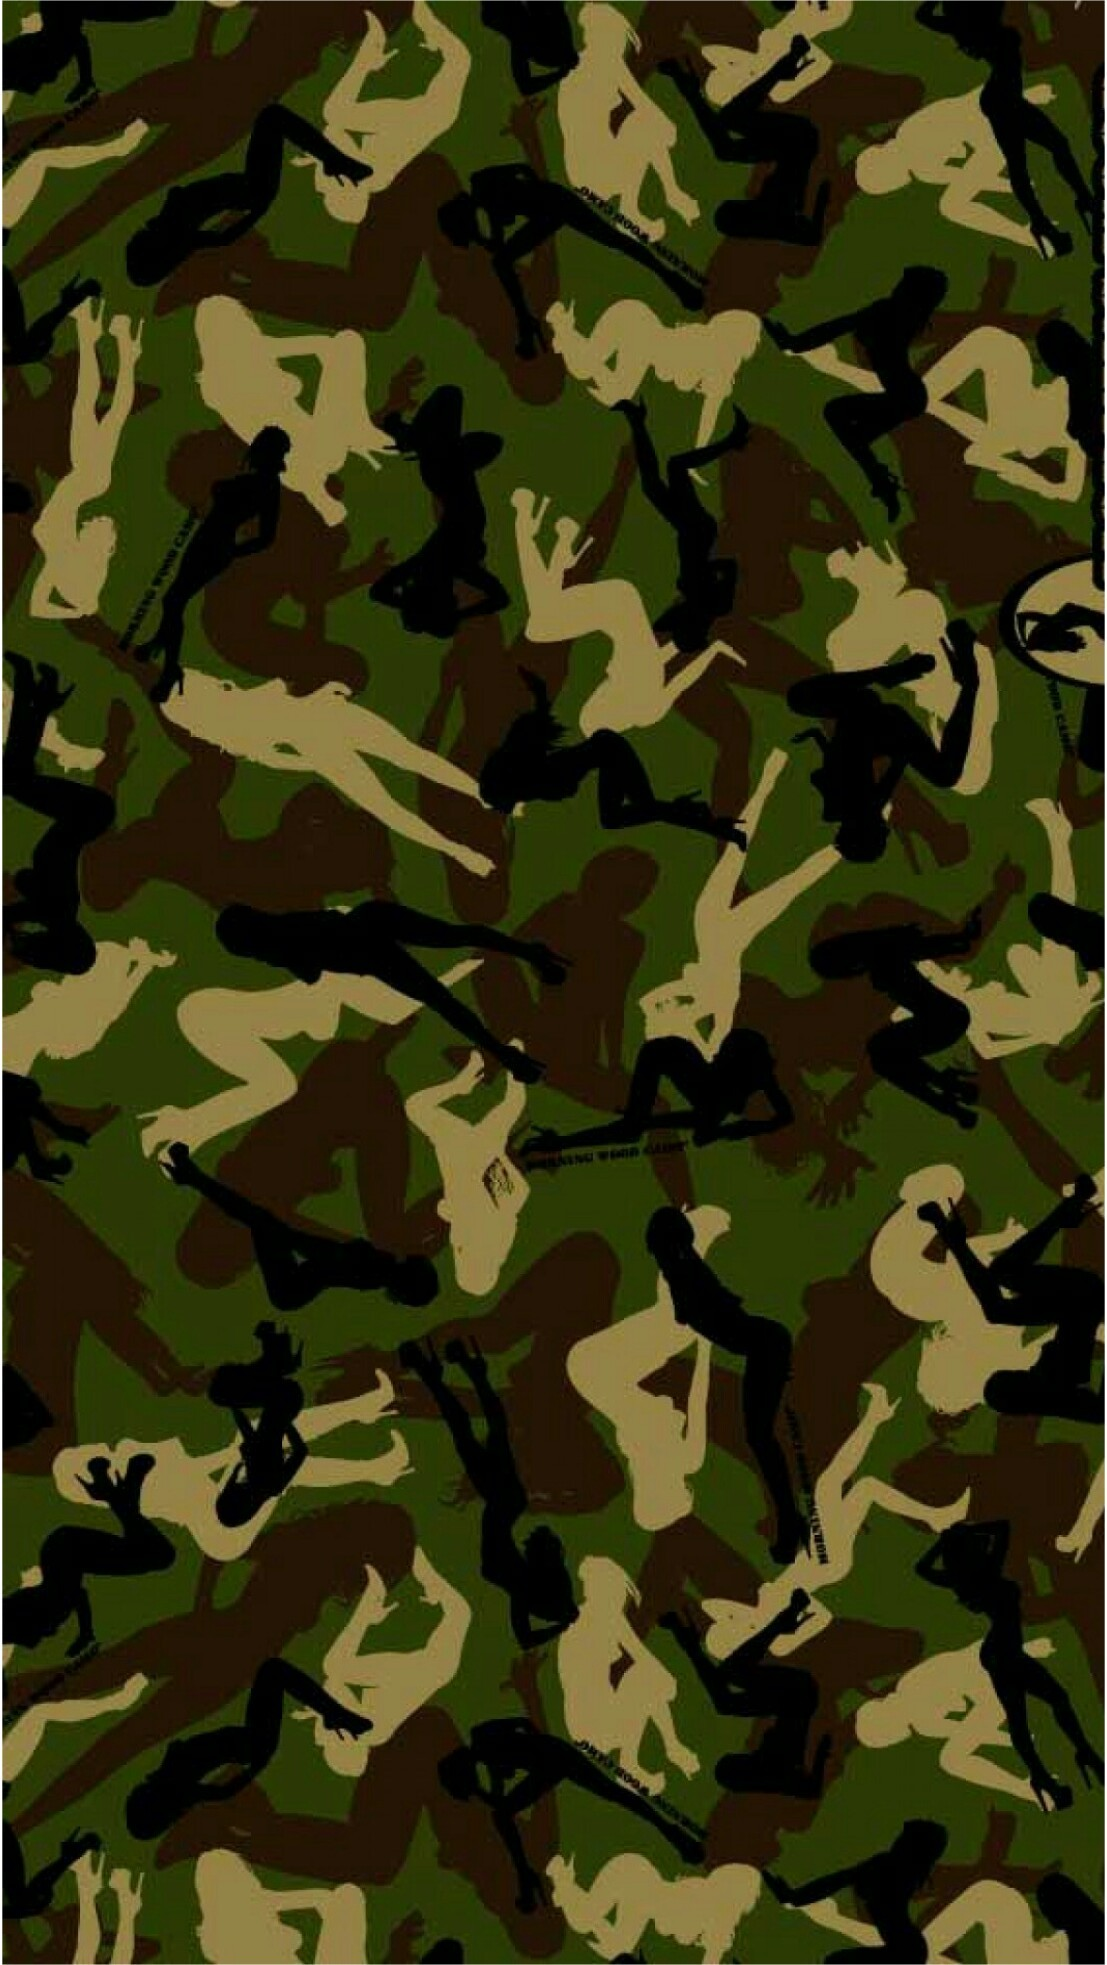 Camo iphone wallpaper hd 60 images - Hunting wallpaper for android ...